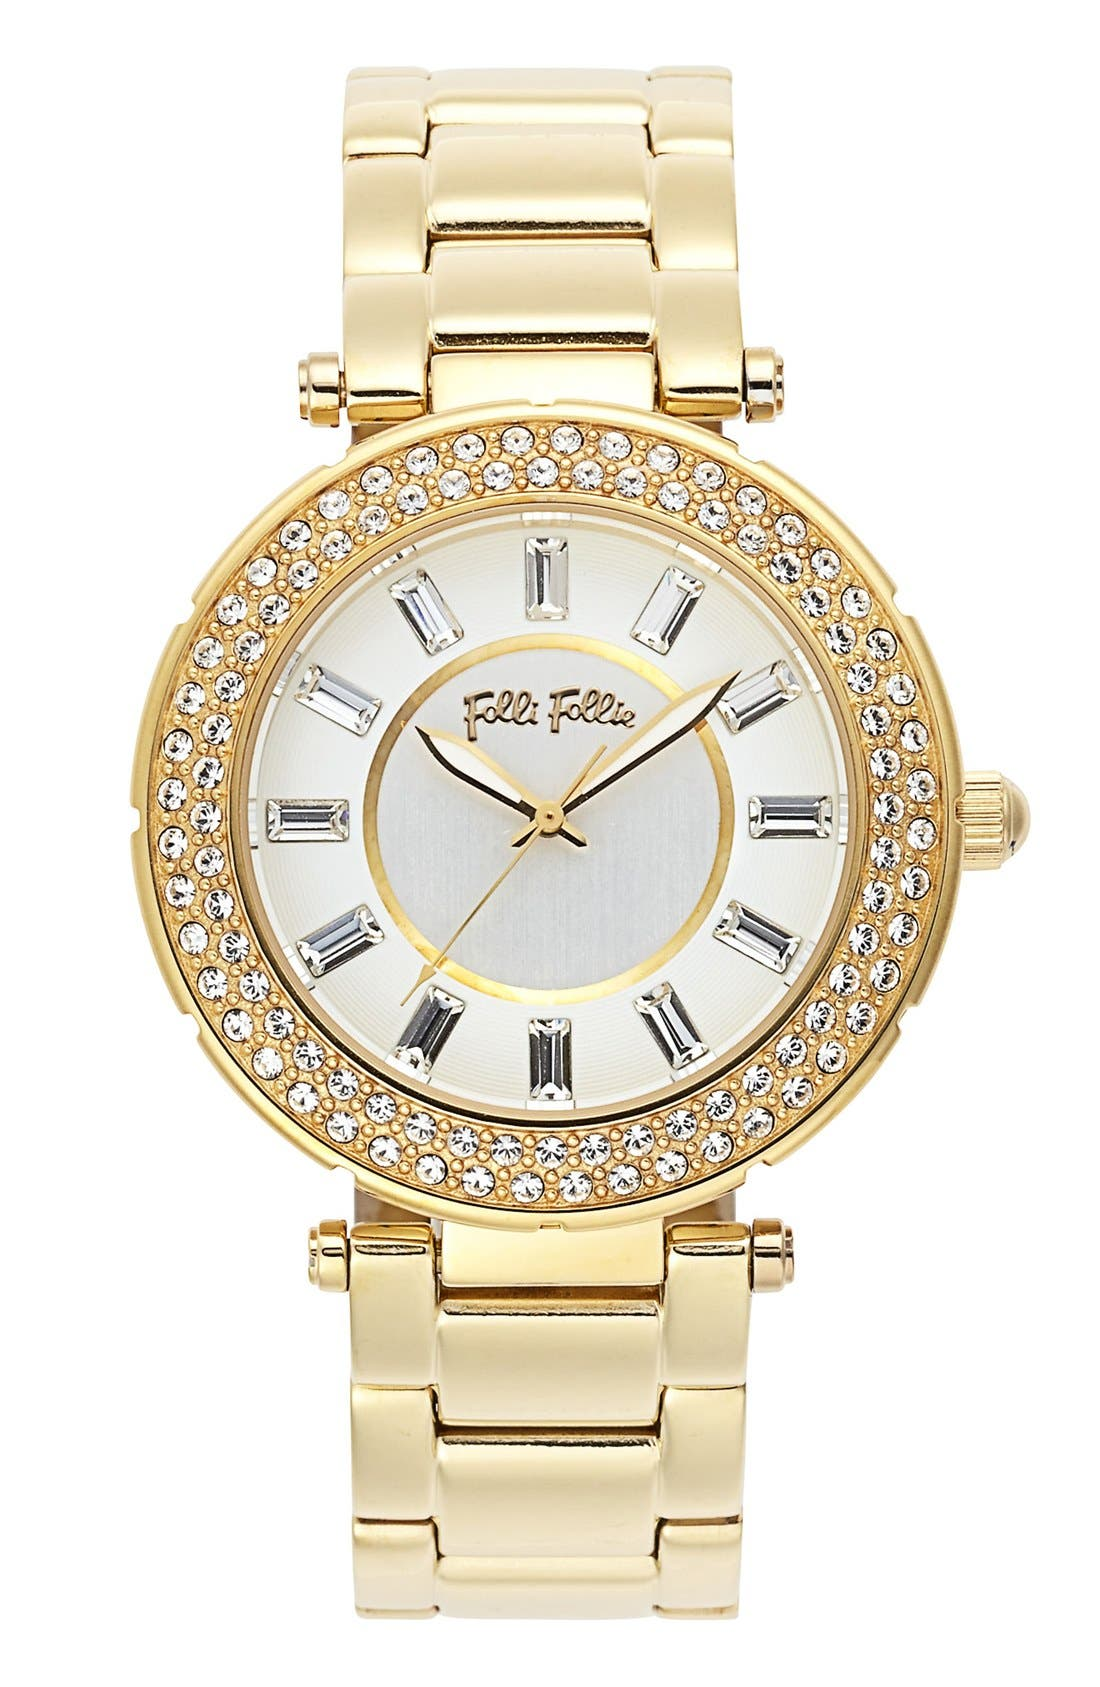 Main Image - Folli Follie 'Beautime' Crystal Bezel Bracelet Watch, 41mm